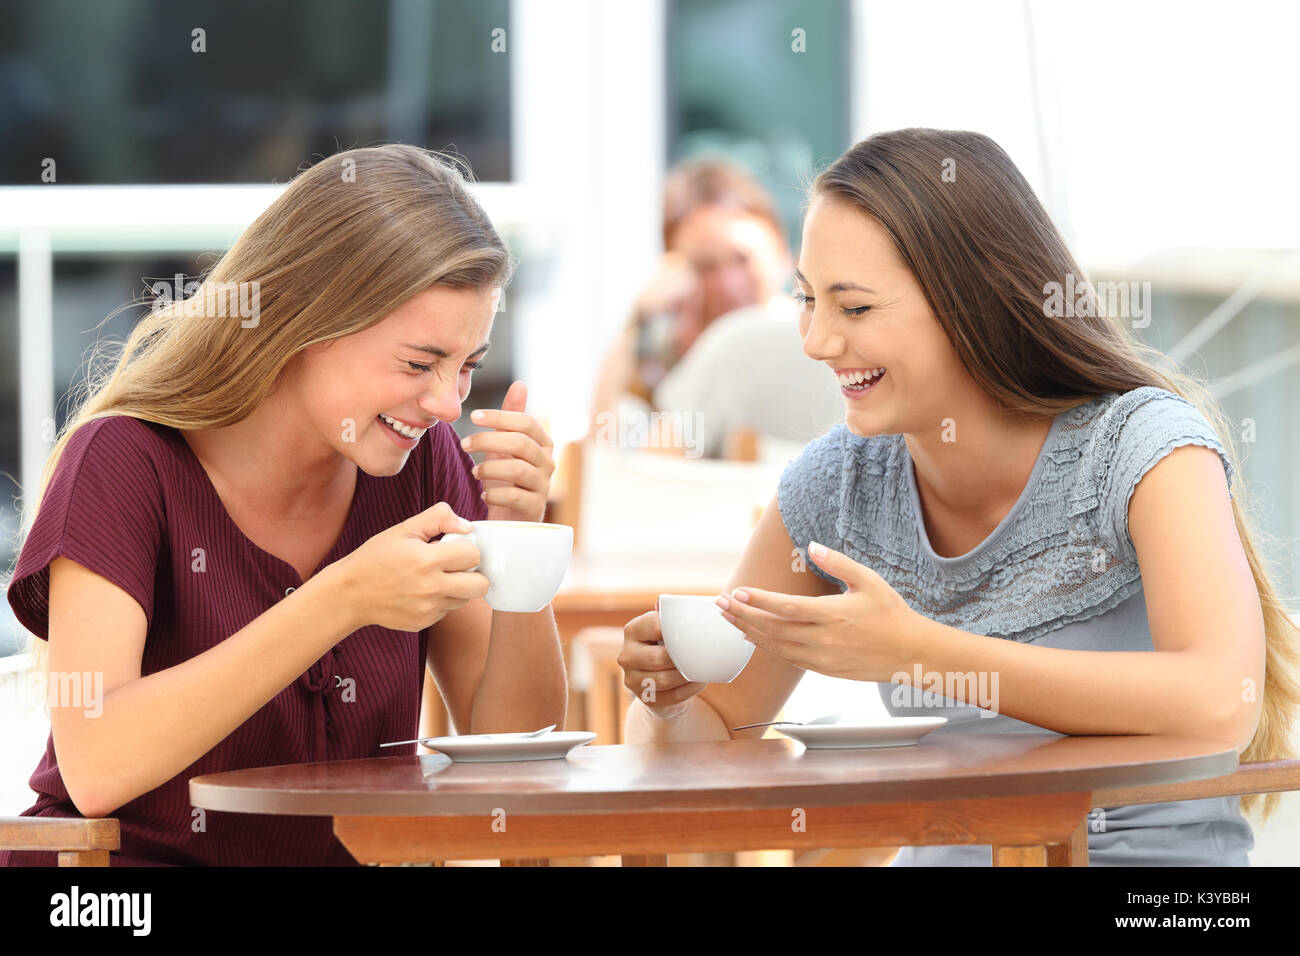 Two best friends laughing loud during a conversation sitting in a restaurant - Stock Image